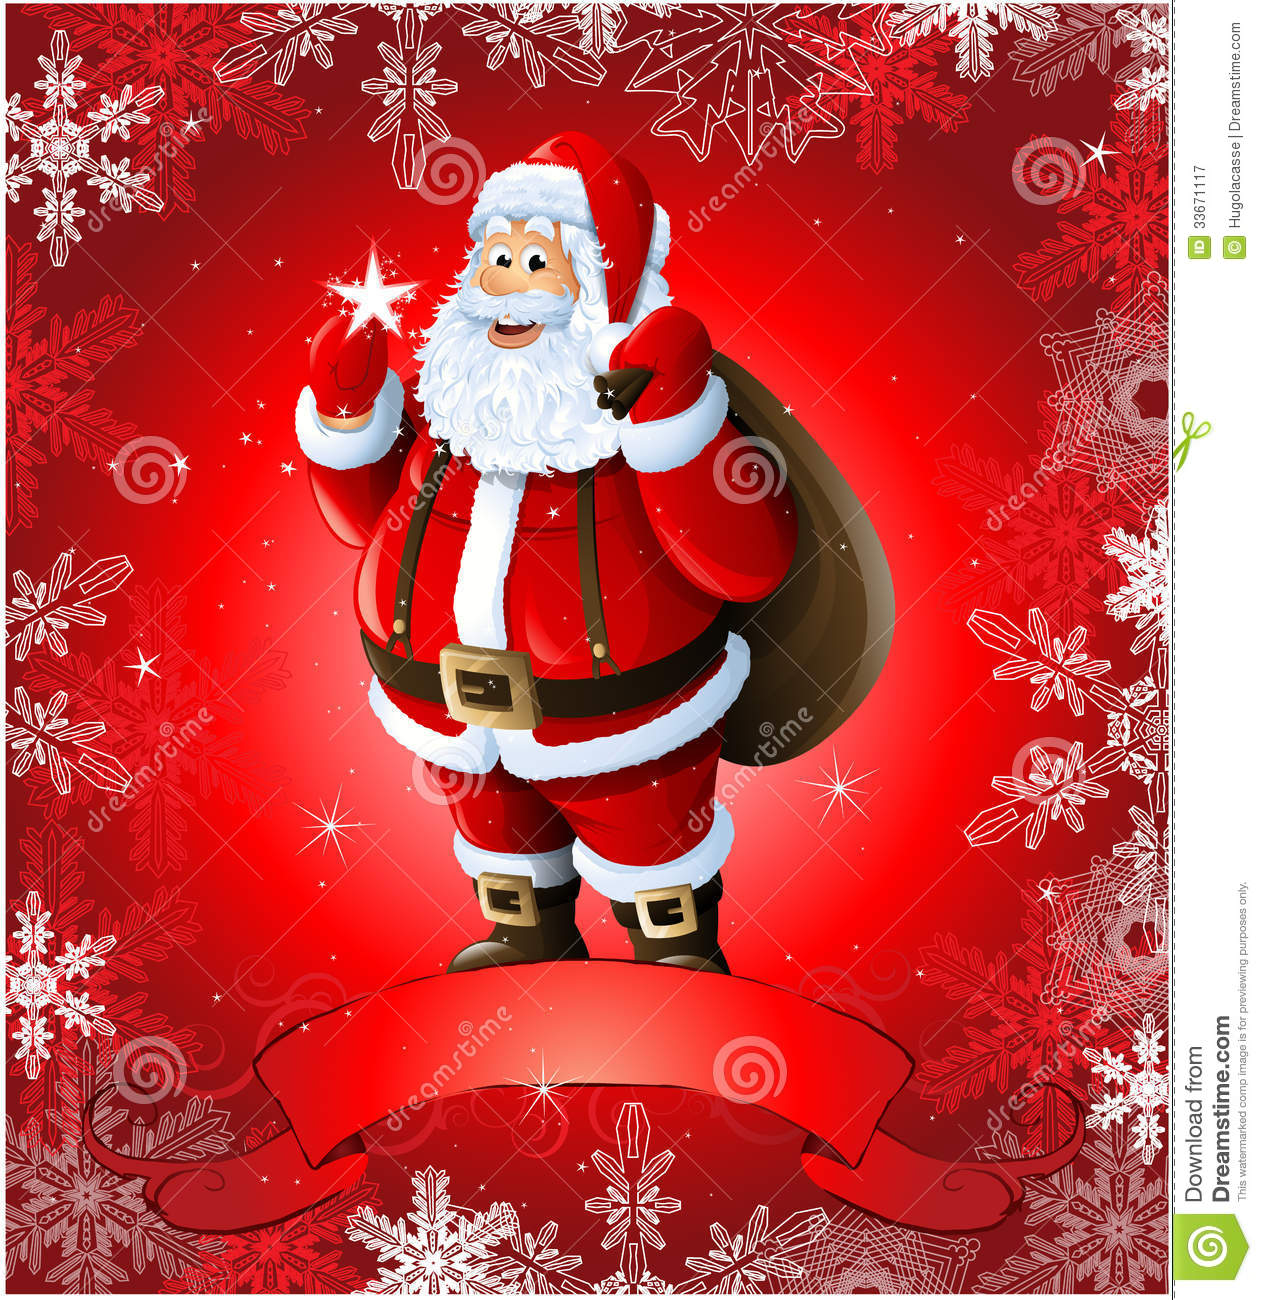 red christmas greeting card with santa claus - Santa Claus Red